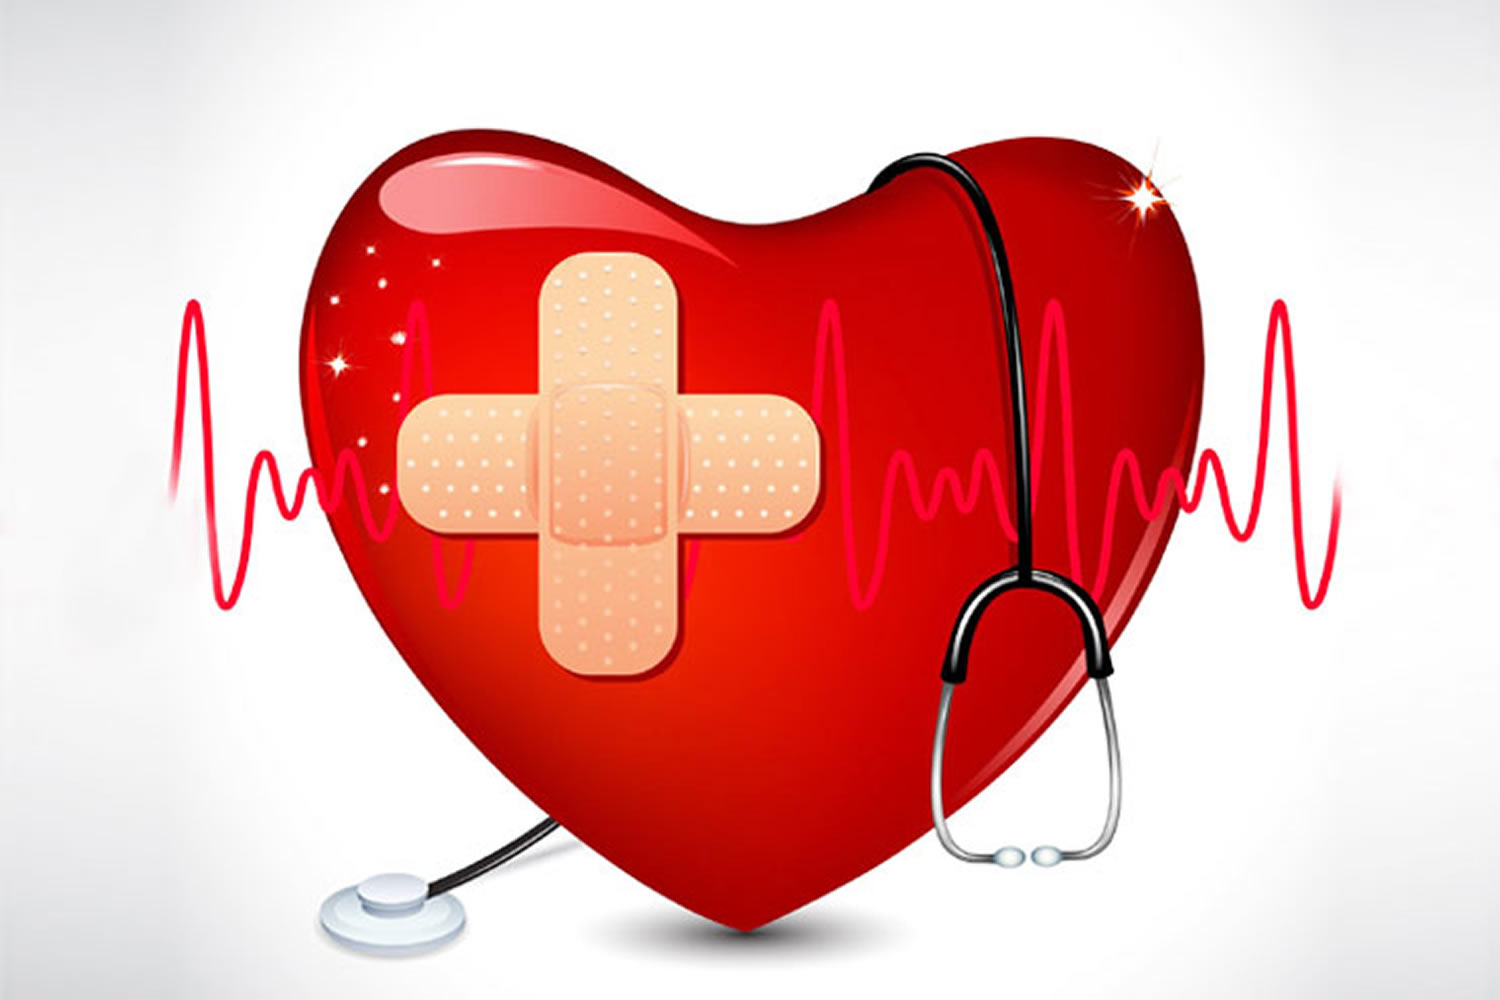 ischemic heart disease Treatment for ischemic heart disease should you have symptoms, your doctor will obtain a complete history, conduct a physical examination and perform an electrocardiogram (ekg), which is a noninvasive test that measures the electrical activity of your heart.